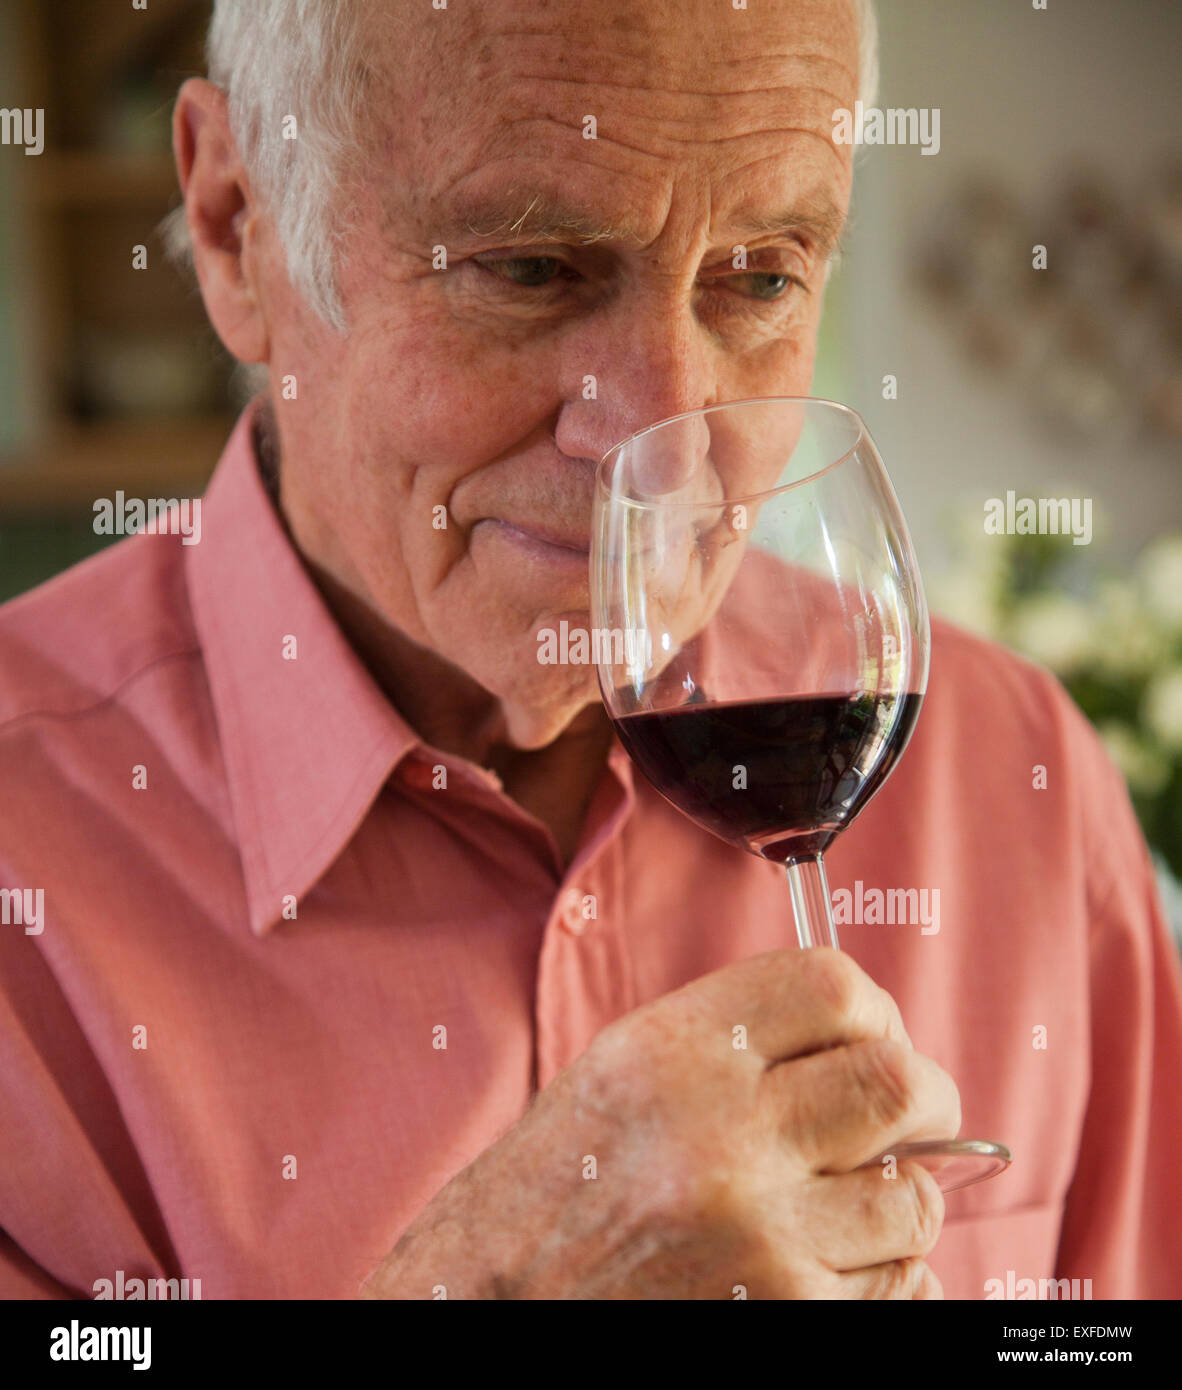 Man smelling aroma of glass of red wine - Stock Image